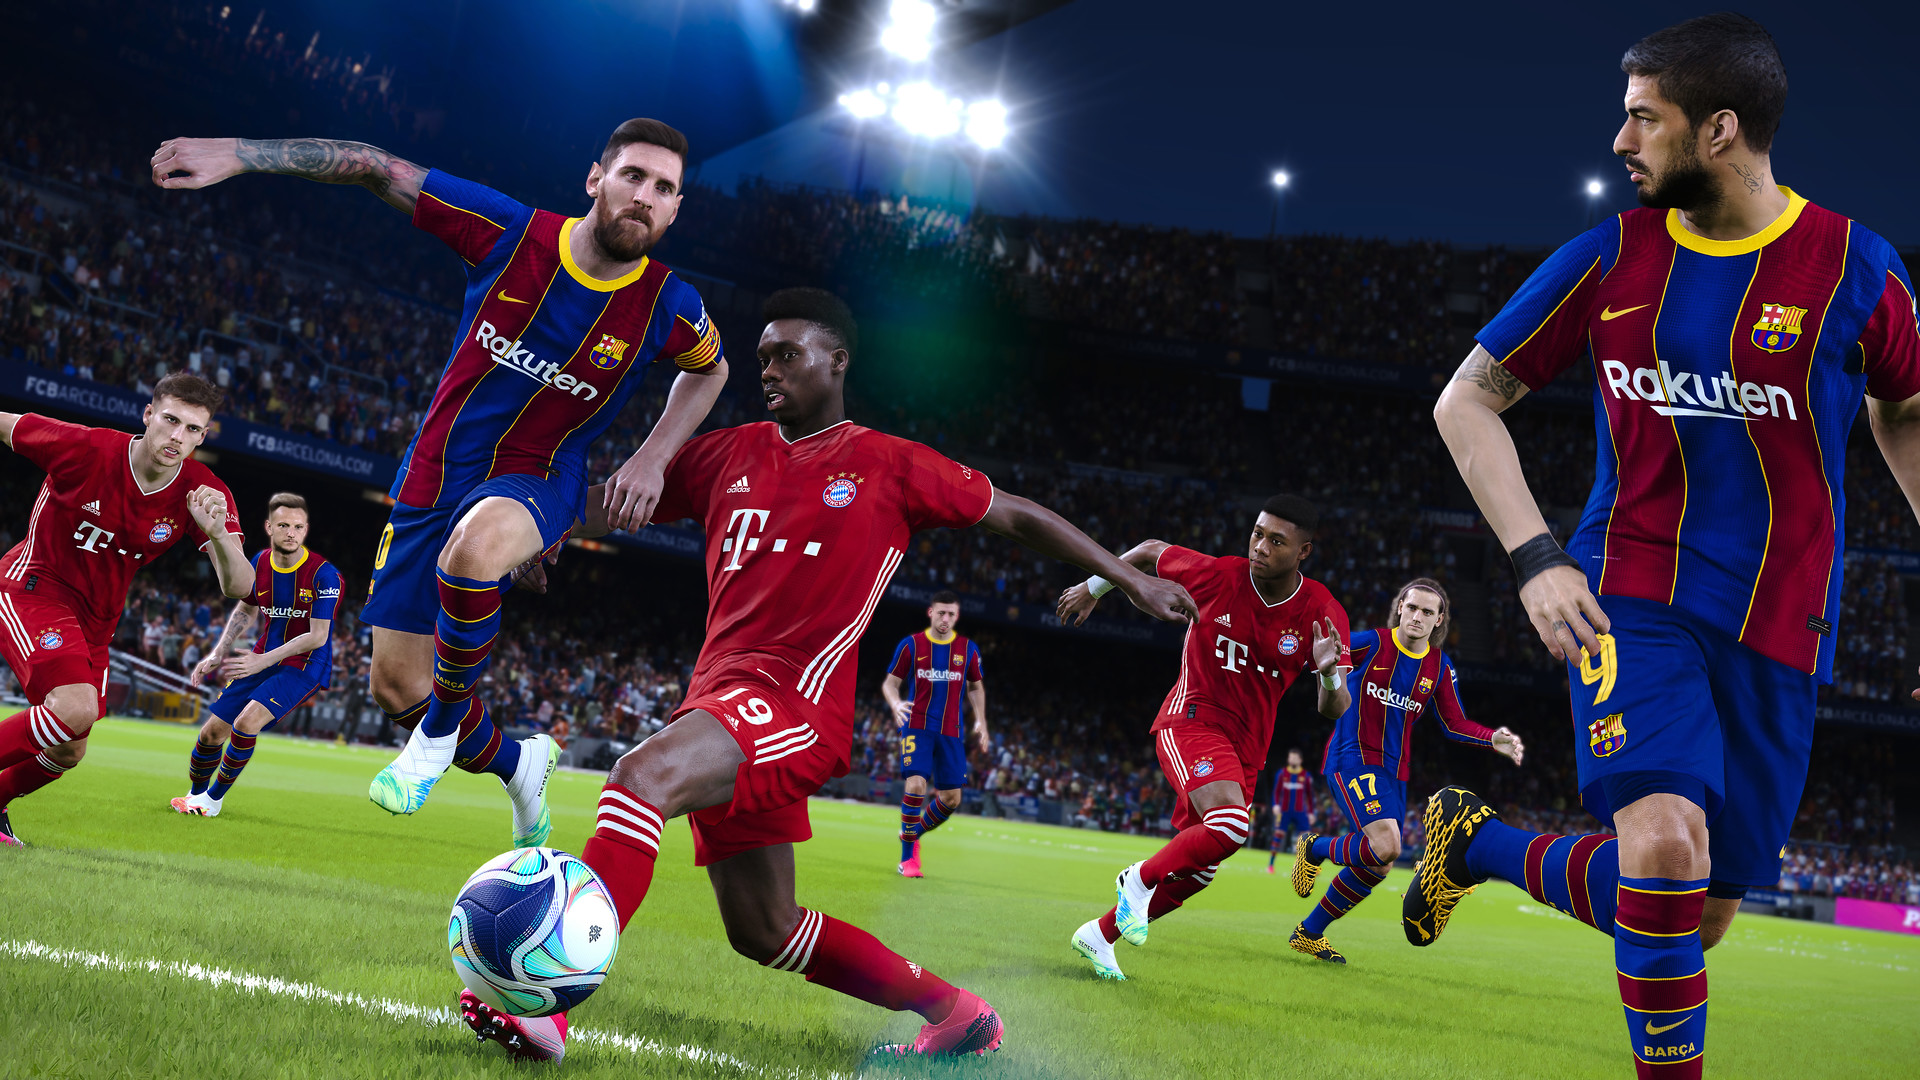 Download eFootball PES 2021 Full Version